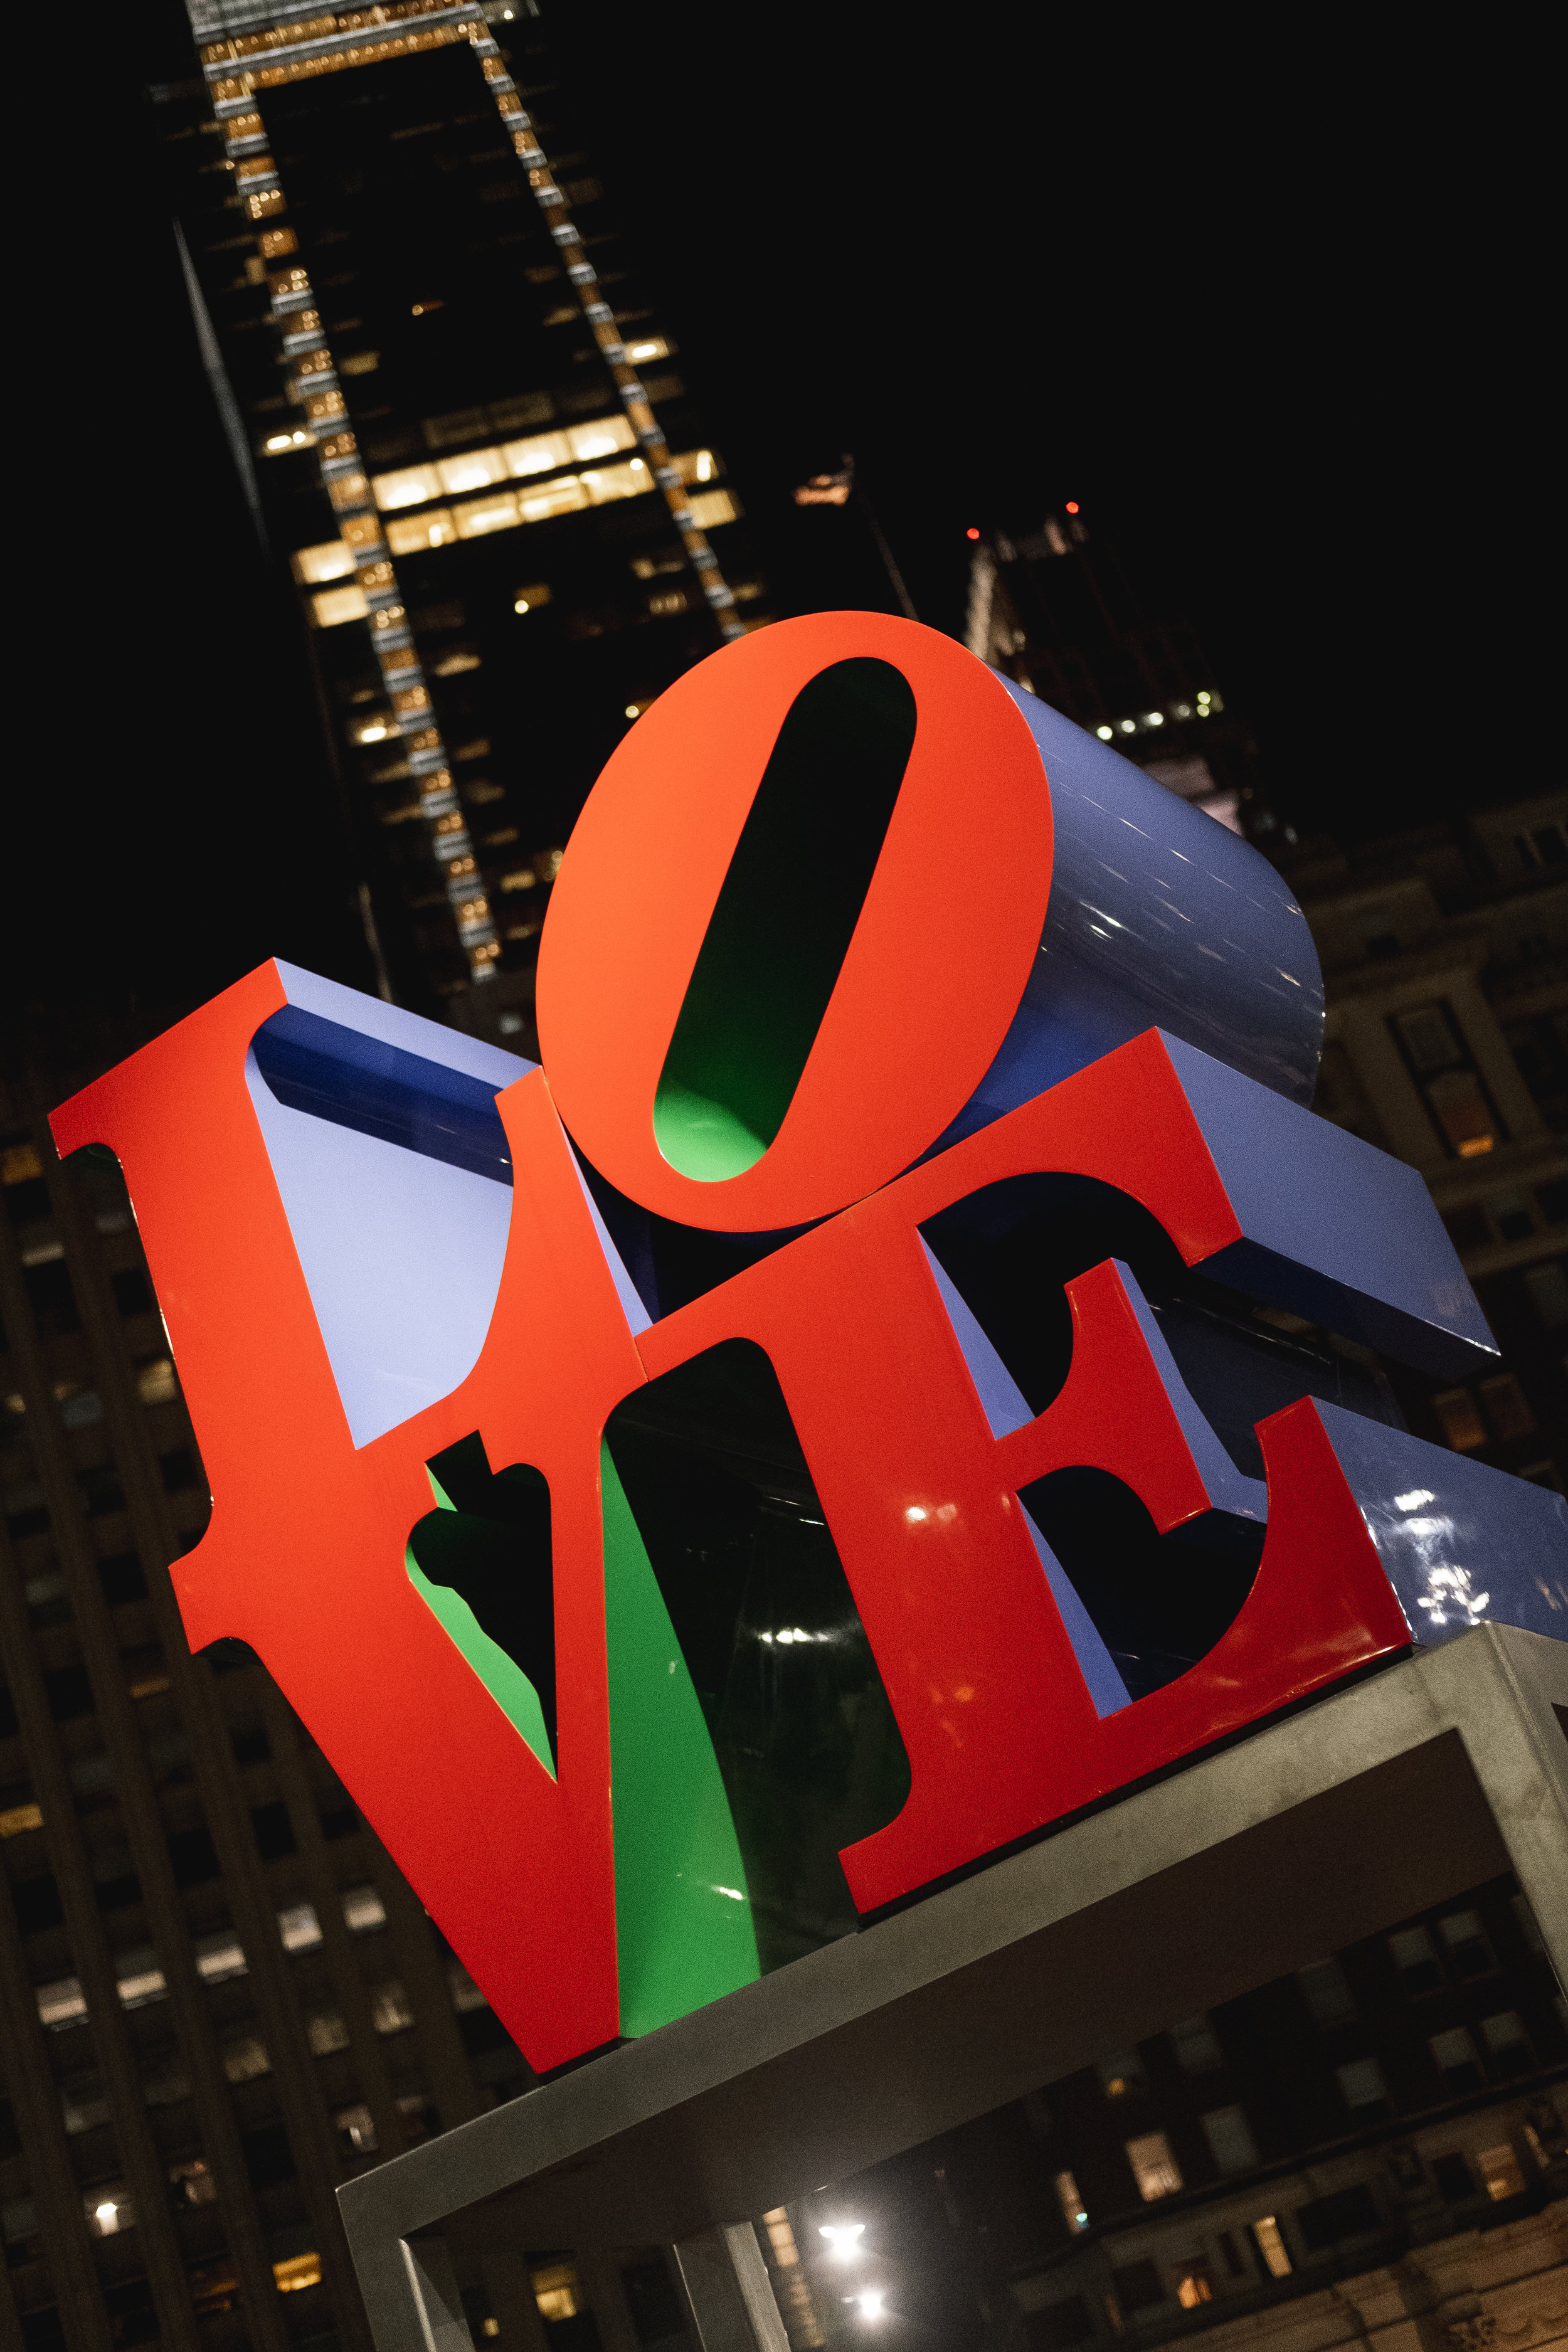 2019_LOVE PARK STATUE_ACTIVITES_THE PHILLY CHECKLIST-8.jpg